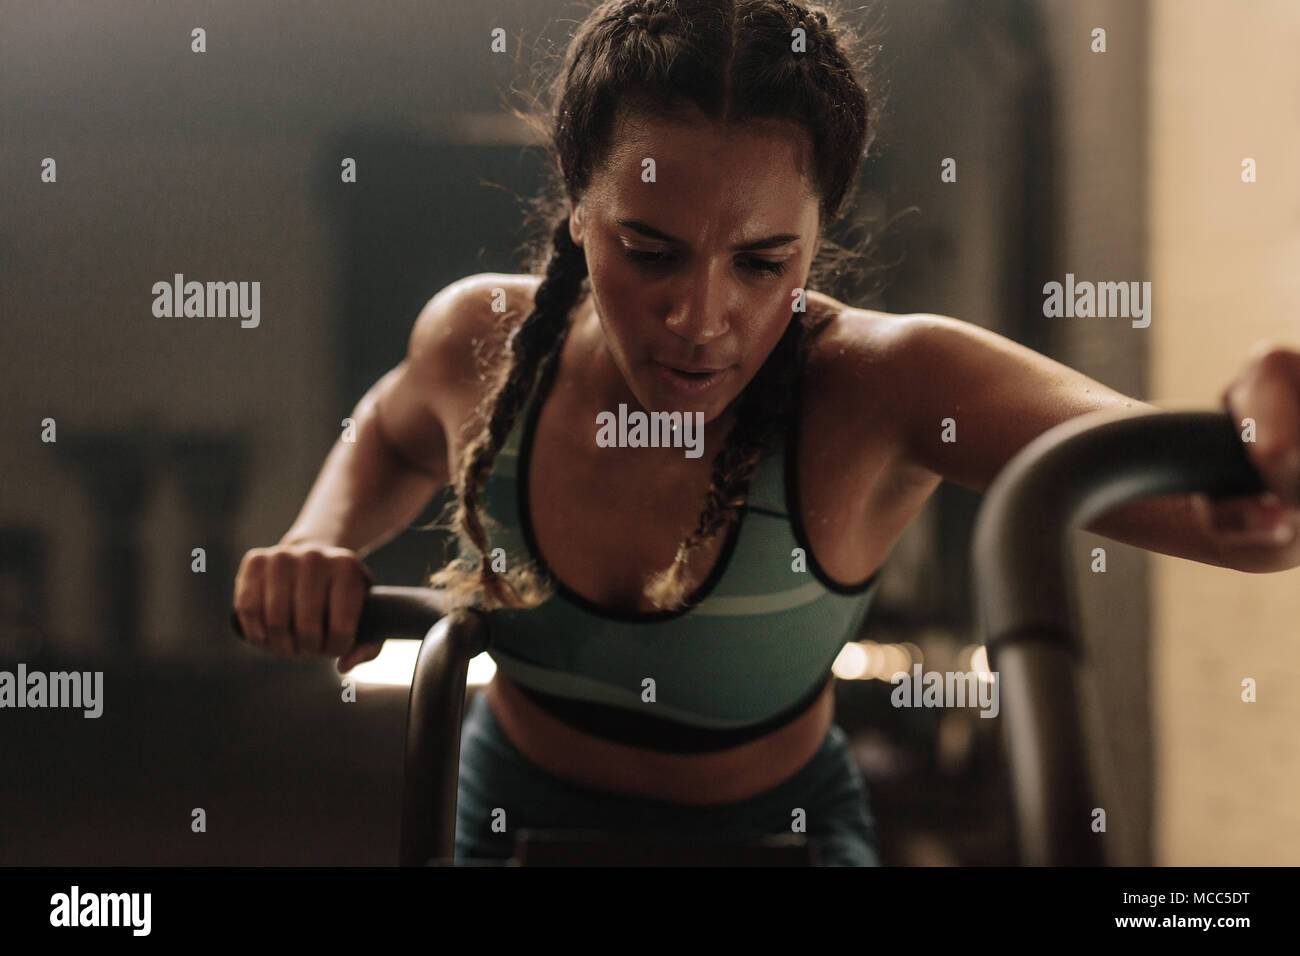 Woman Doing Intense Workout On Gym Bike Fitness Female Using Air